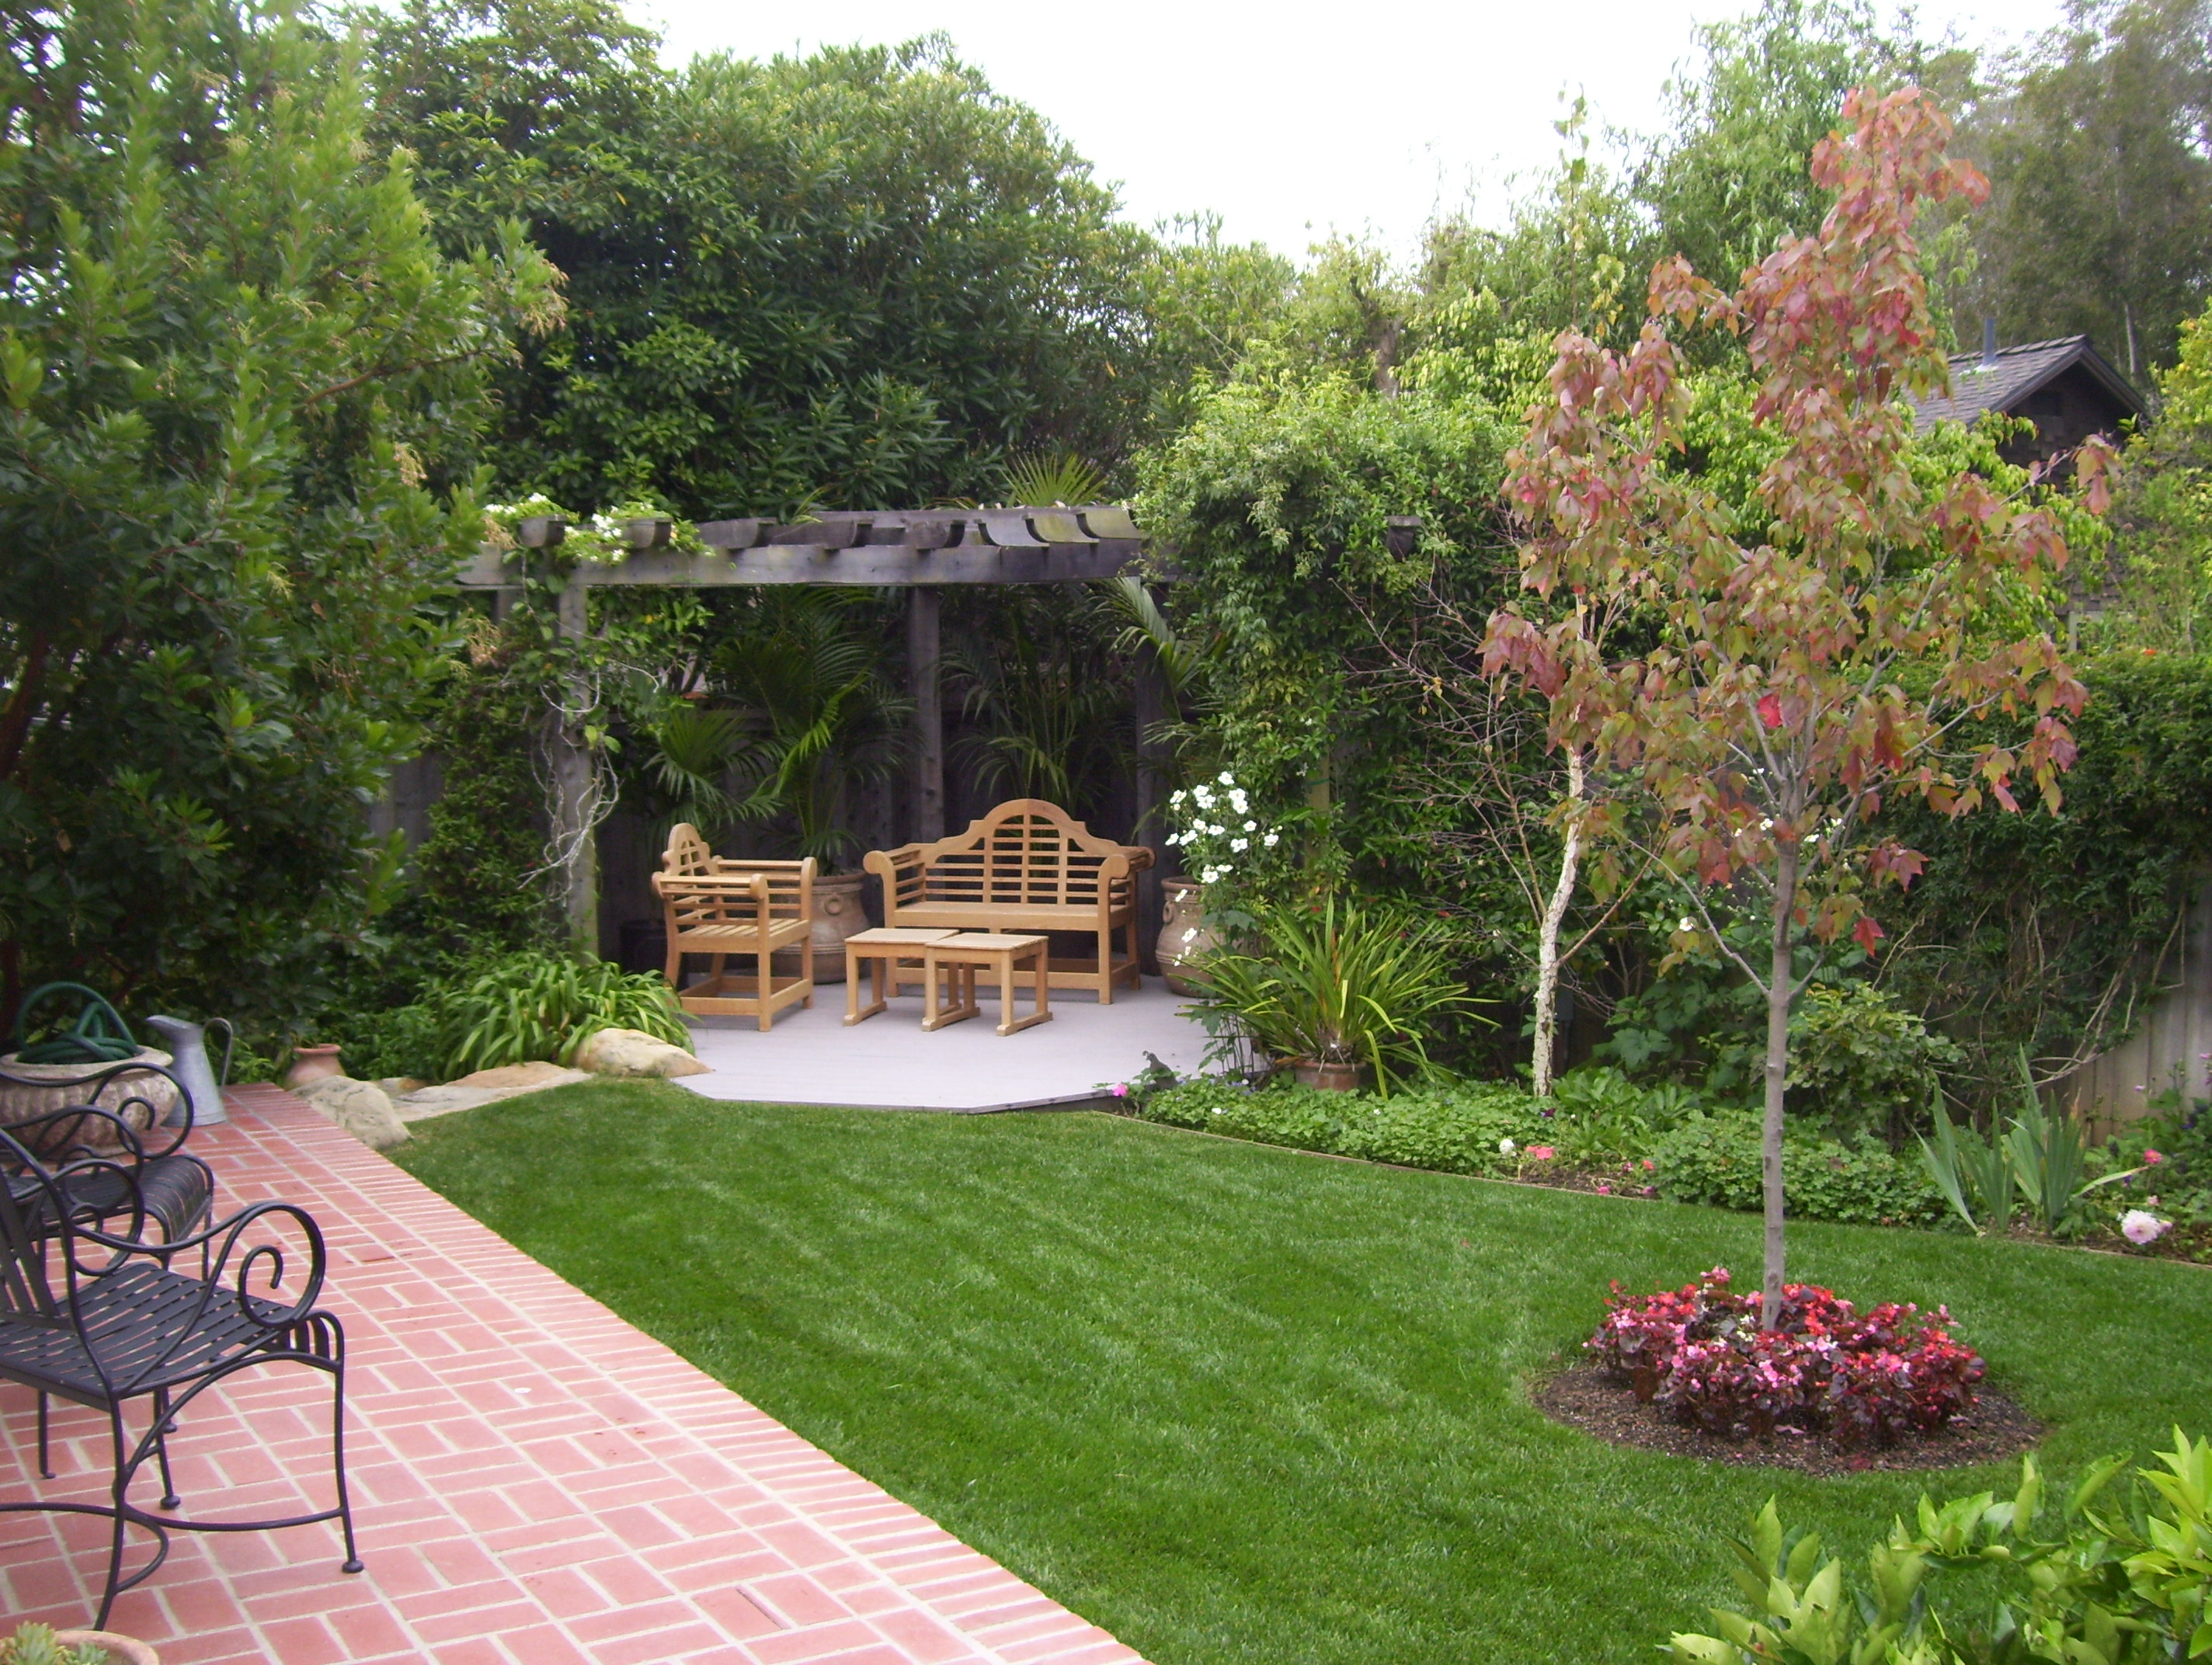 Backyard landscaping ideas santa barbara down to earth for Backyard garden ideas